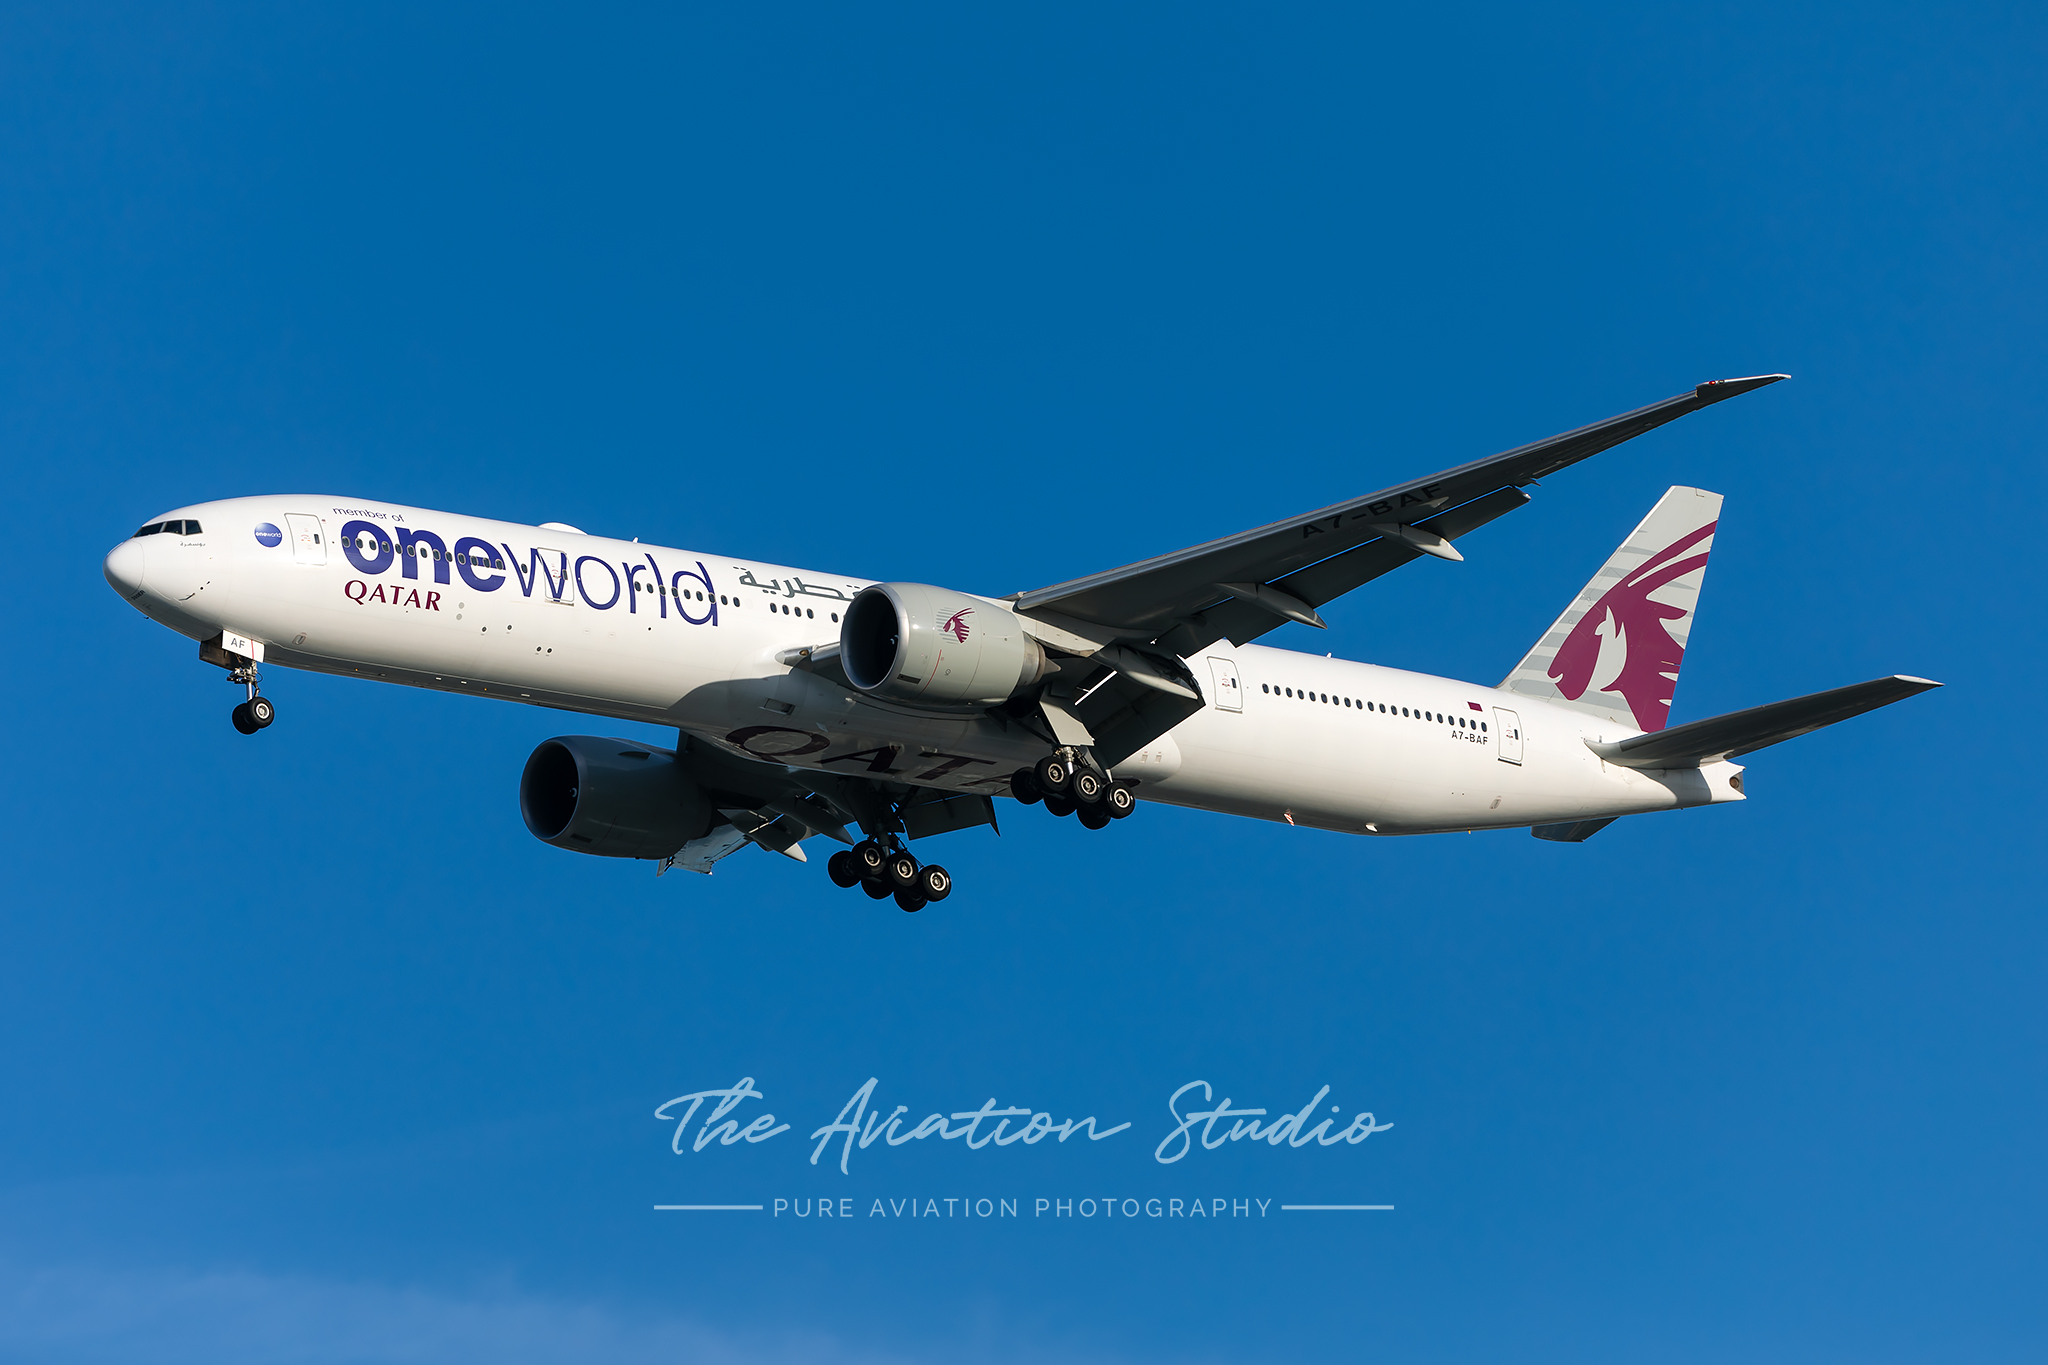 Qatar Airways 777-300ER A7-BAM in the Oneworld livery about to land at Brisbane Photo: Lance Broad